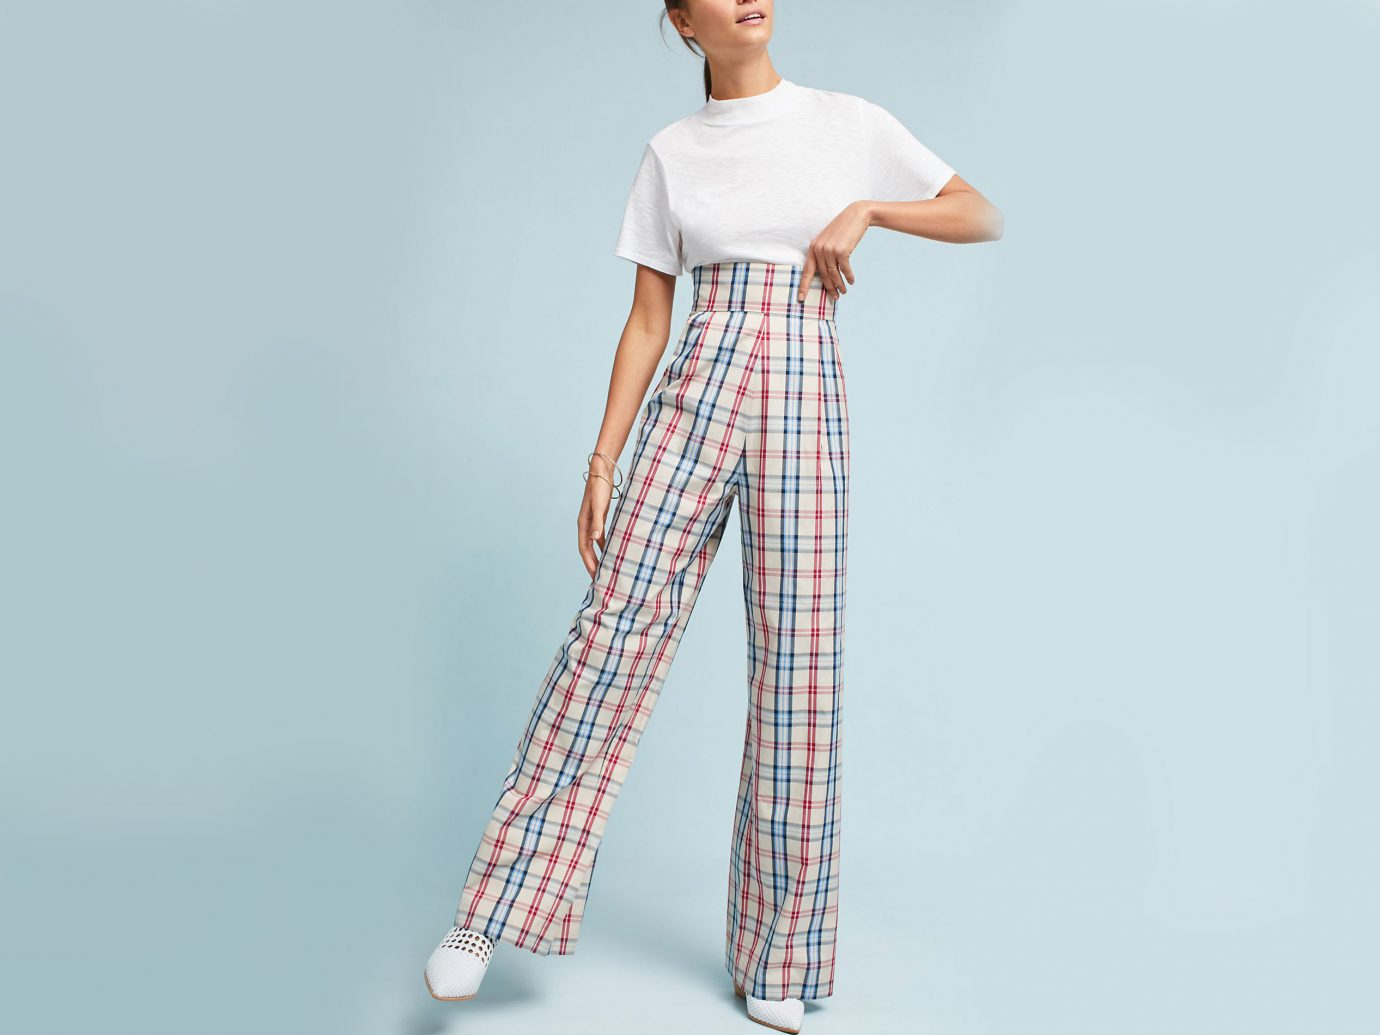 Travel Shop Travel Trends clothing person tartan plaid shoulder joint trunk Design waist fashion model abdomen neck trousers trouser pattern